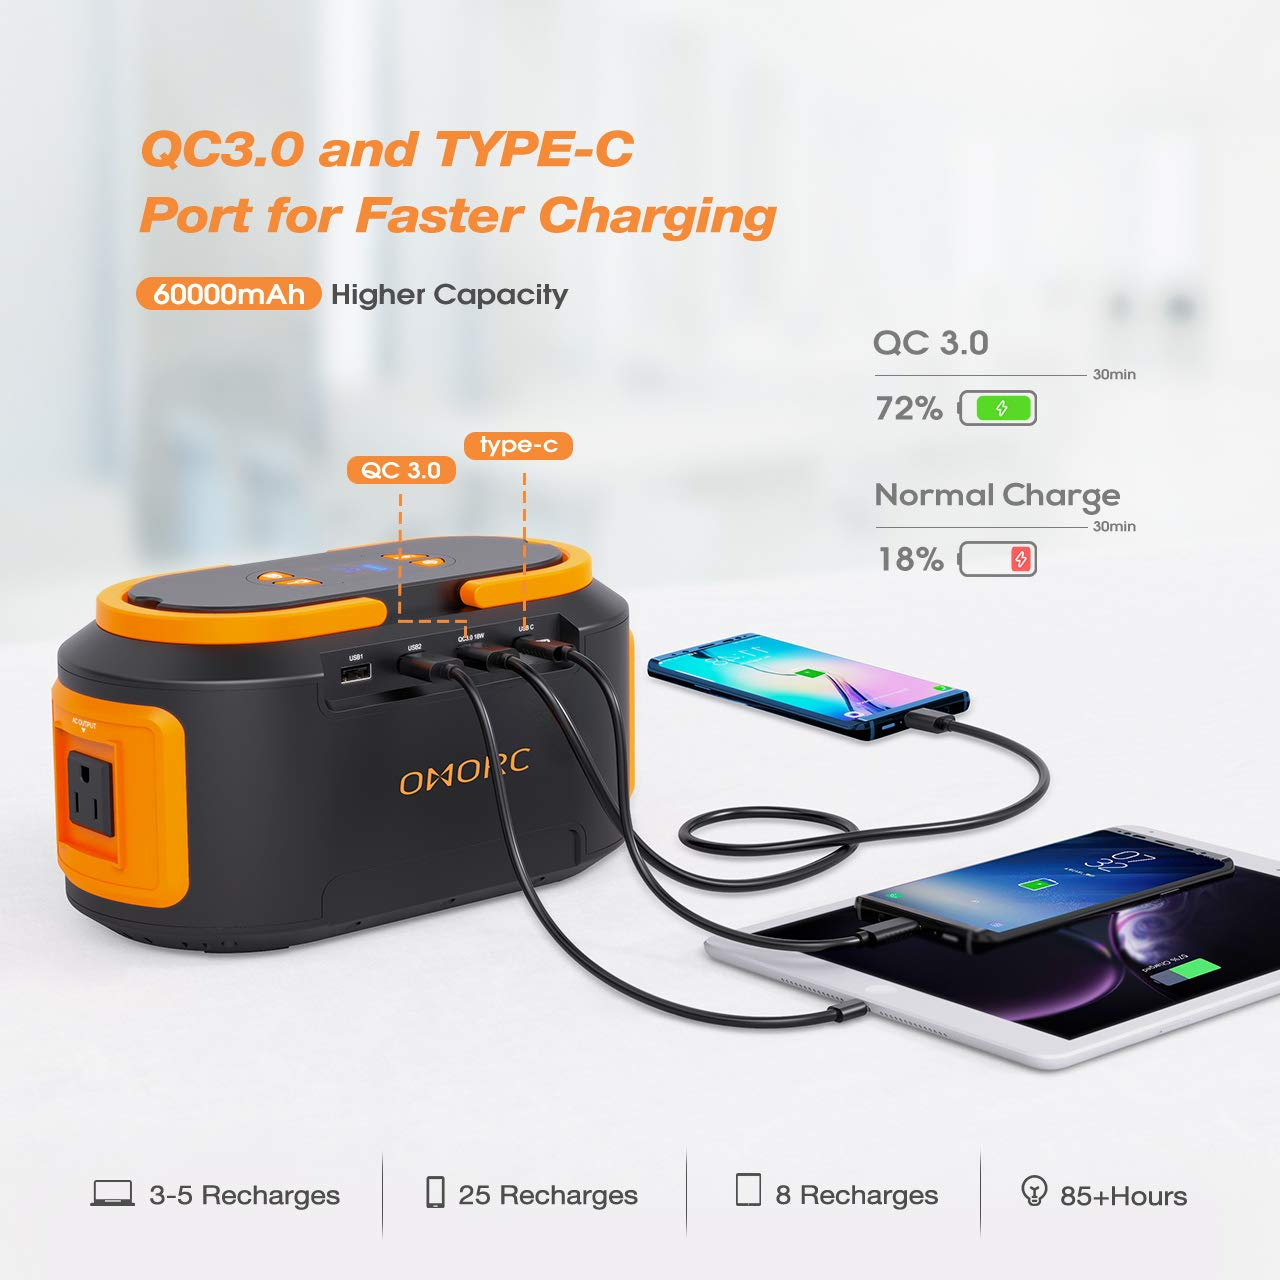 OMORC 222Wh 60000mAh Portable Power Station 4 USB Quick Charger 3.0 Type C ,4 DC Ports,300W Peak AC Outlets,LED Lights,Solar Portable Generator Battery Backup Emergency for CPAP Camping Fishing